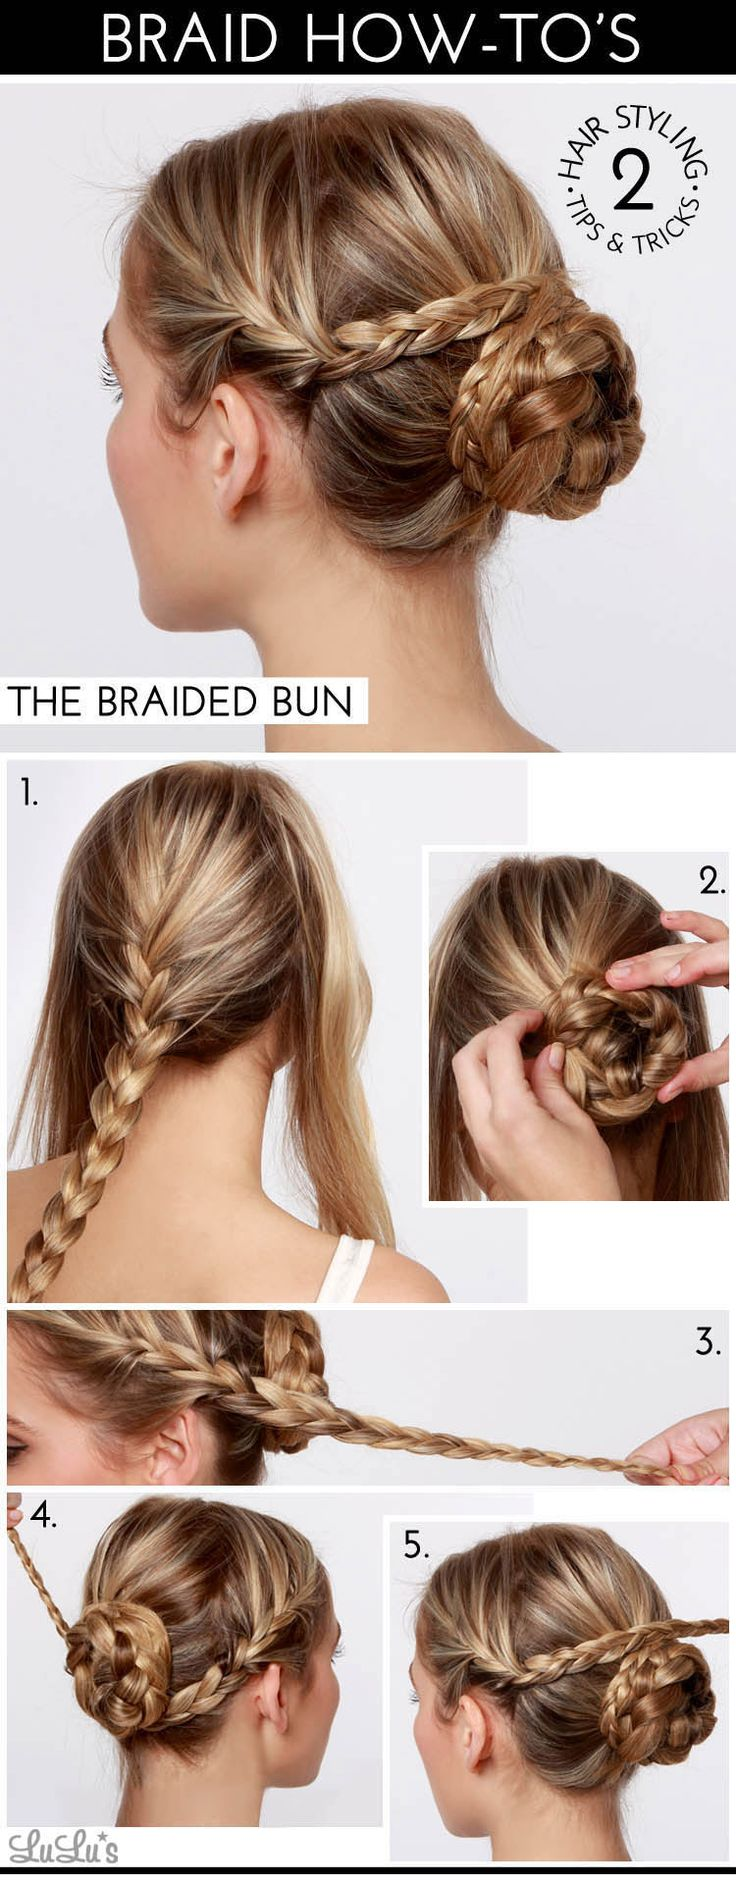 braided bun hair tutorial